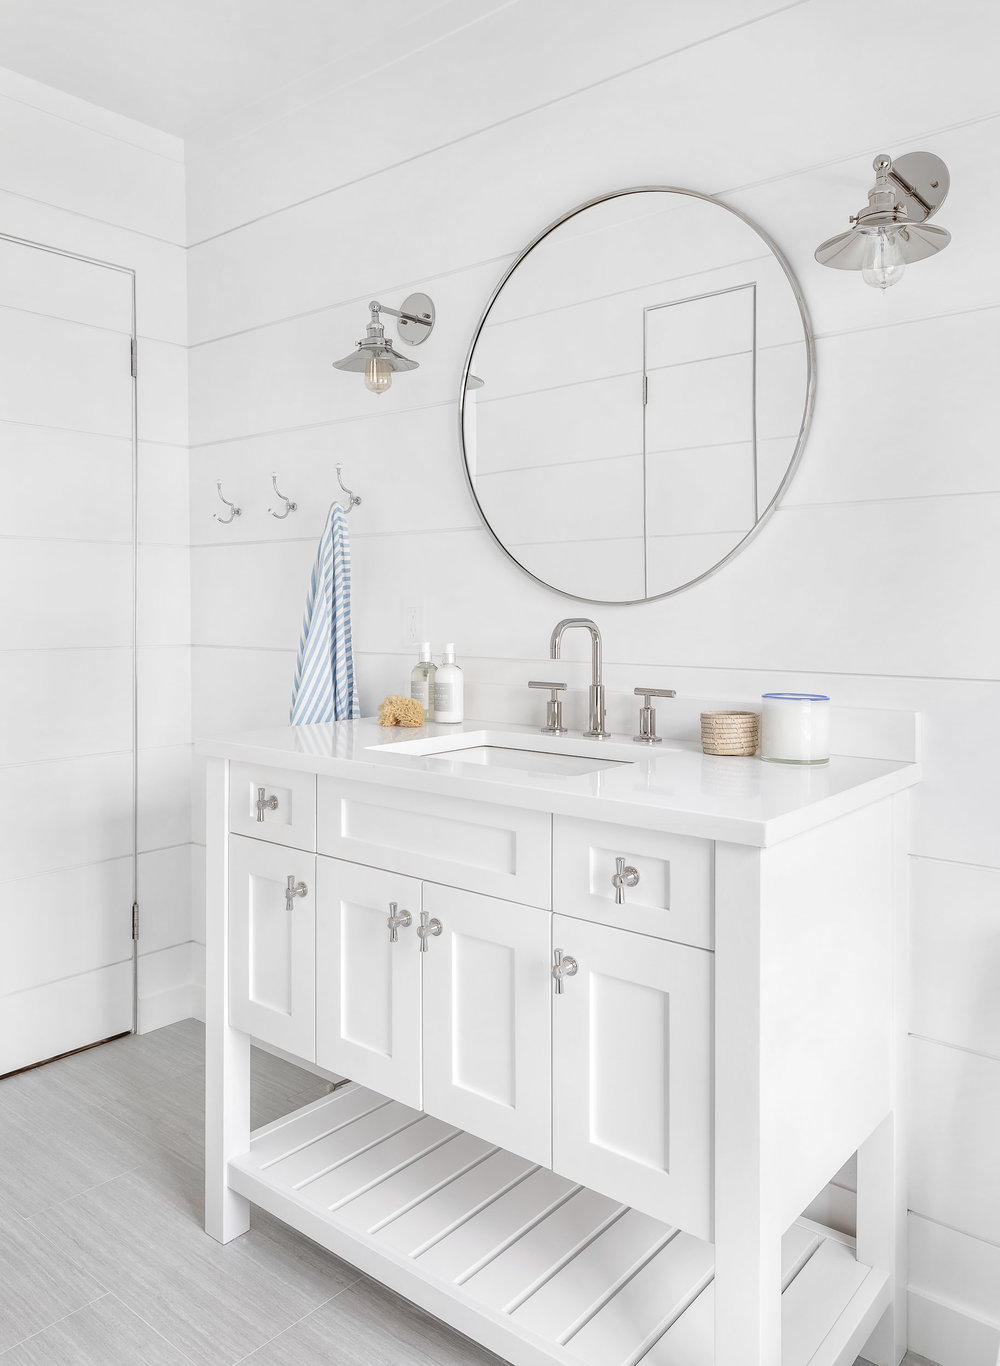 parker and parker design-interior design photography-darien ct-white bathroom-shiplap walls and vanity.jpg